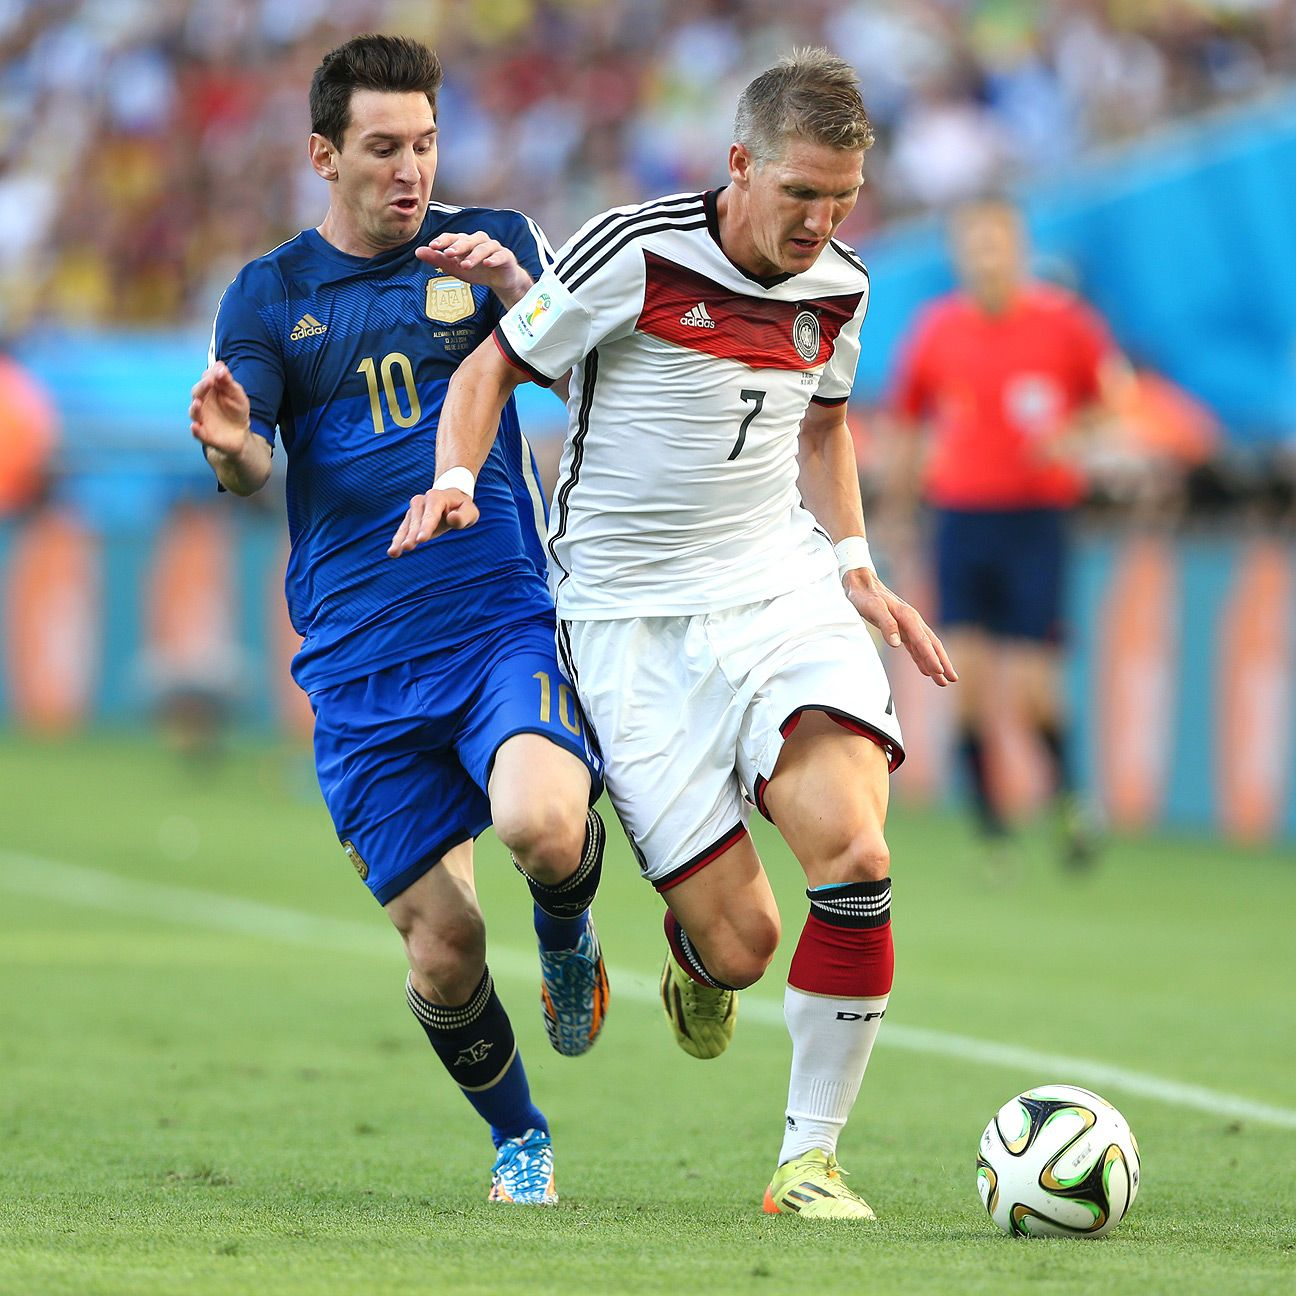 With Khedira injured and Kramer forced off early, Schweinsteiger calmly guided Germany to victory.